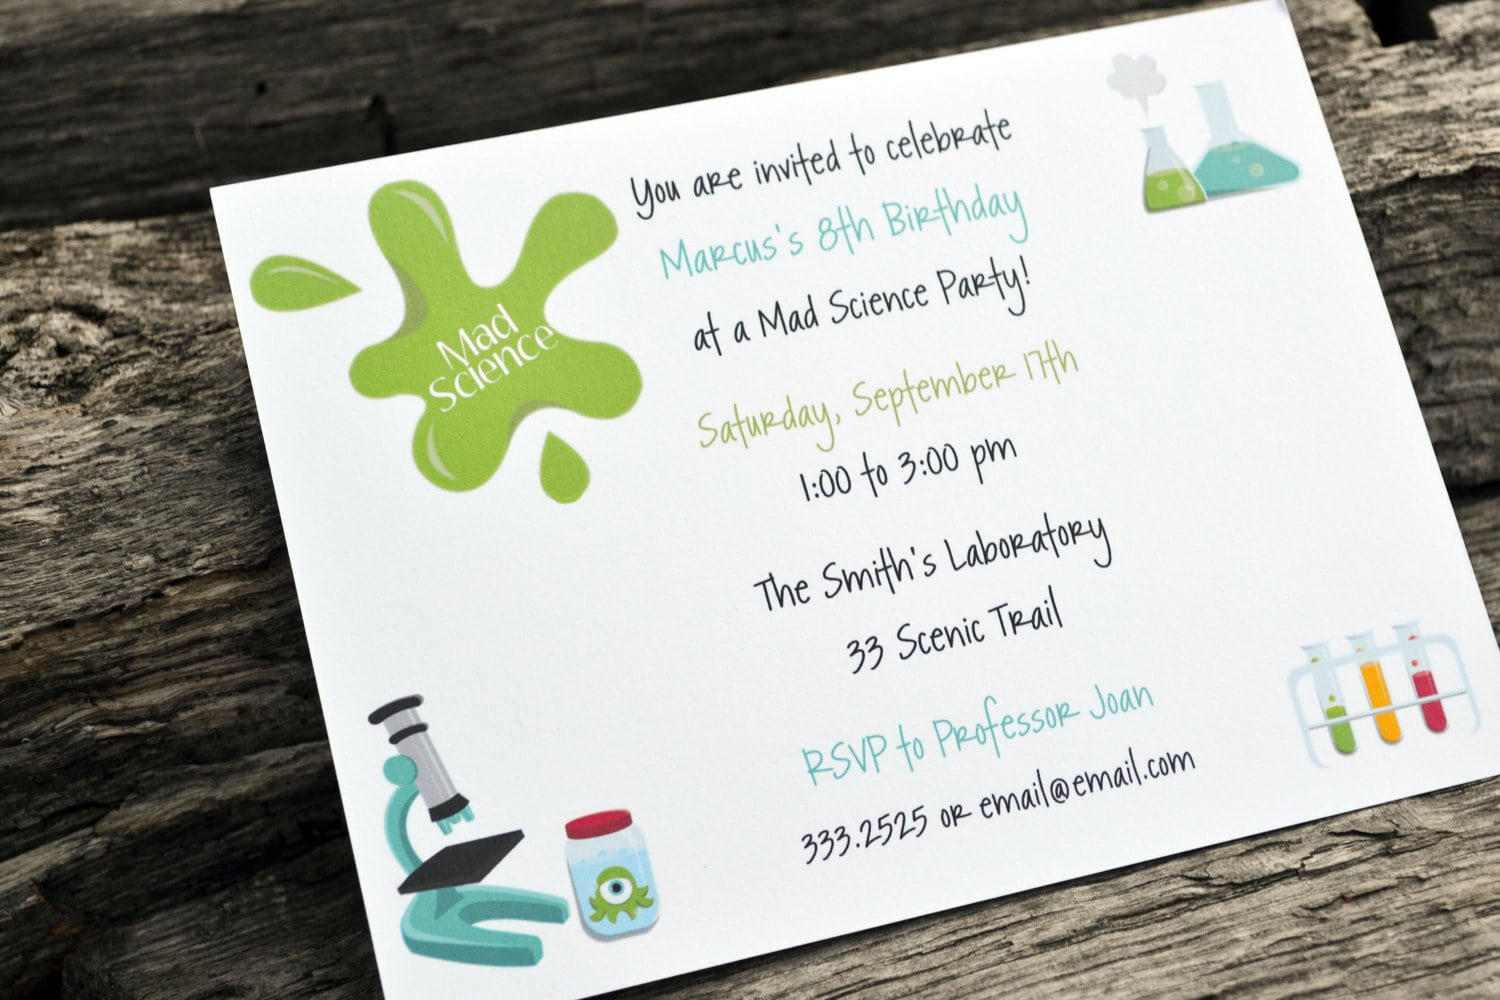 Science Party Invitation Wording - Mickey Mouse Invitations Templates